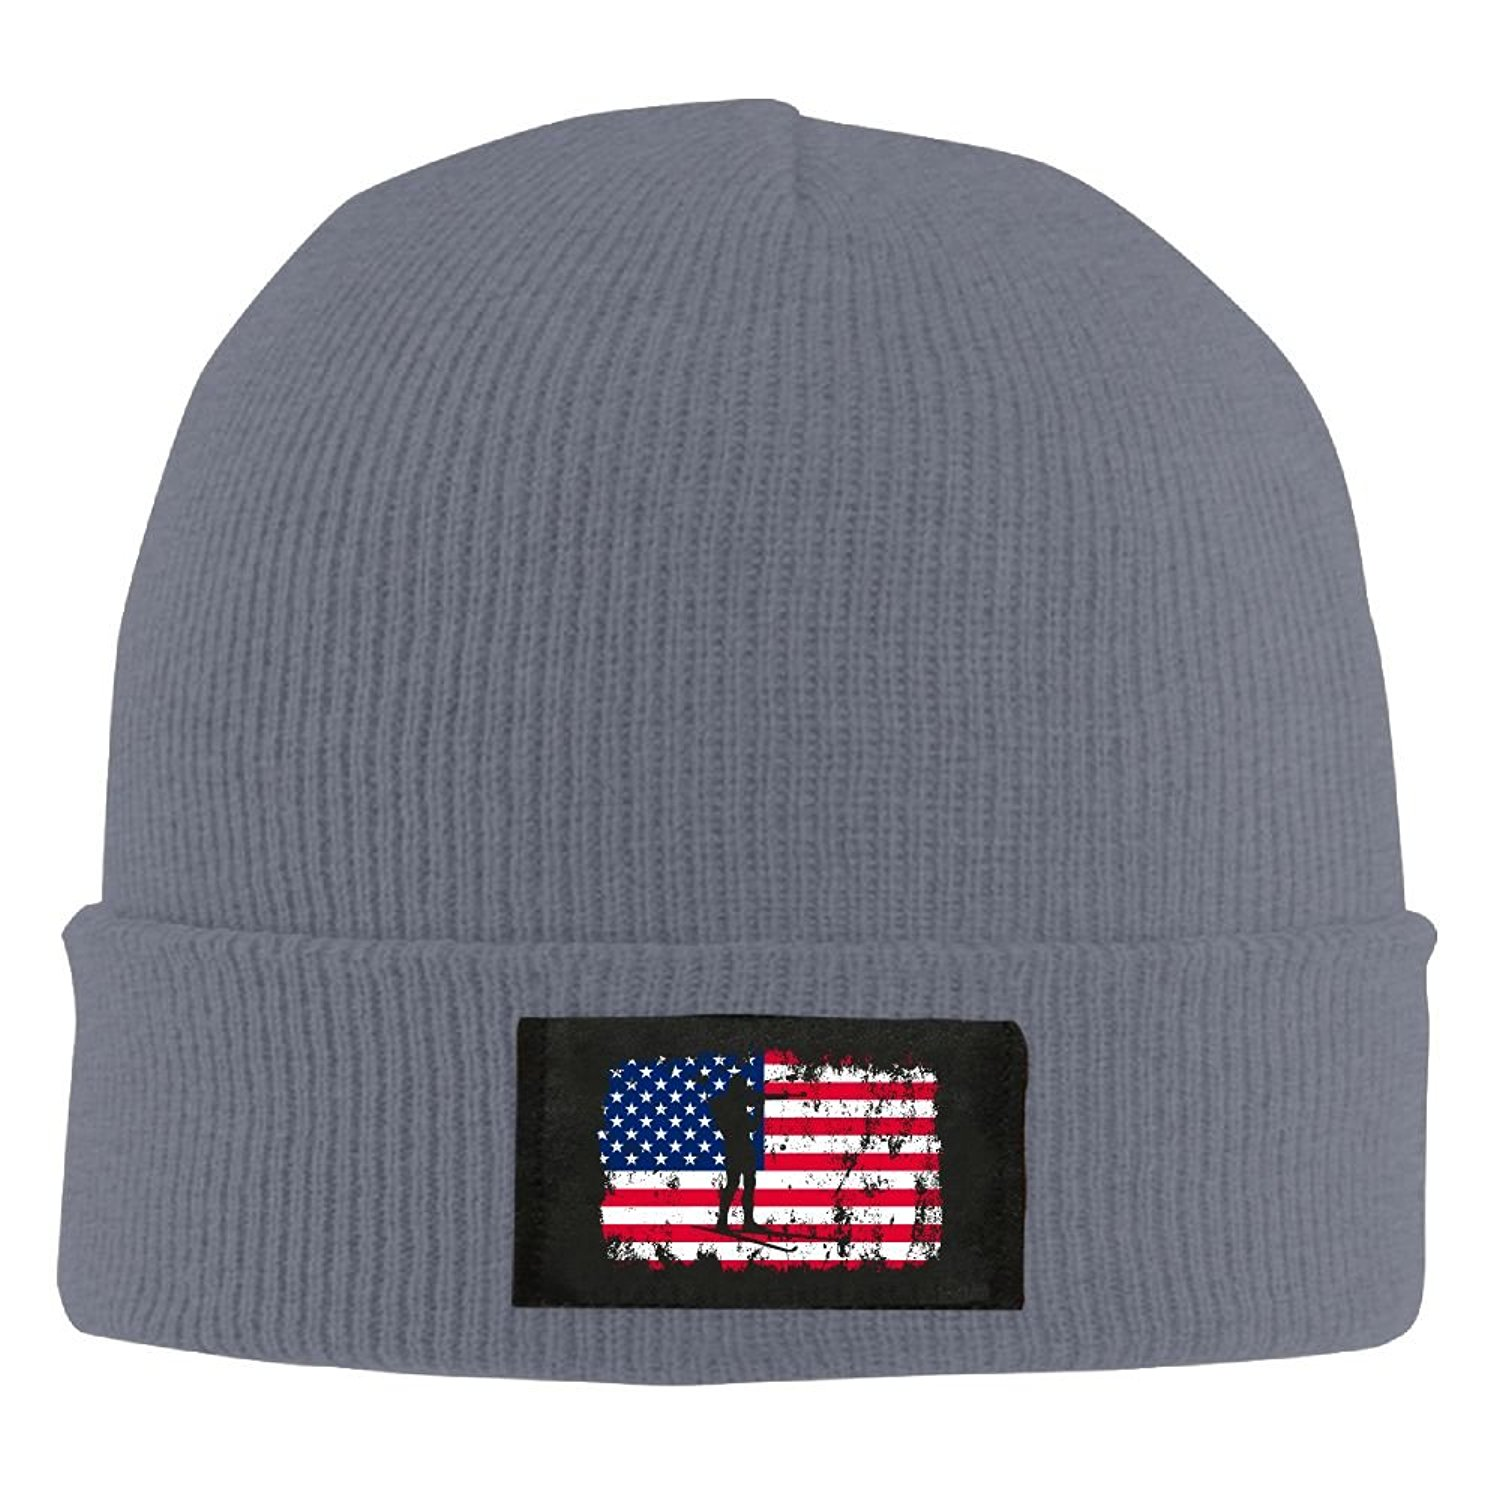 1462abd06acc2c Get Quotations · Gaet Caps Two items In Winter American Flag Men Unisex  Winter Warm Beanie Hat Cold Thick